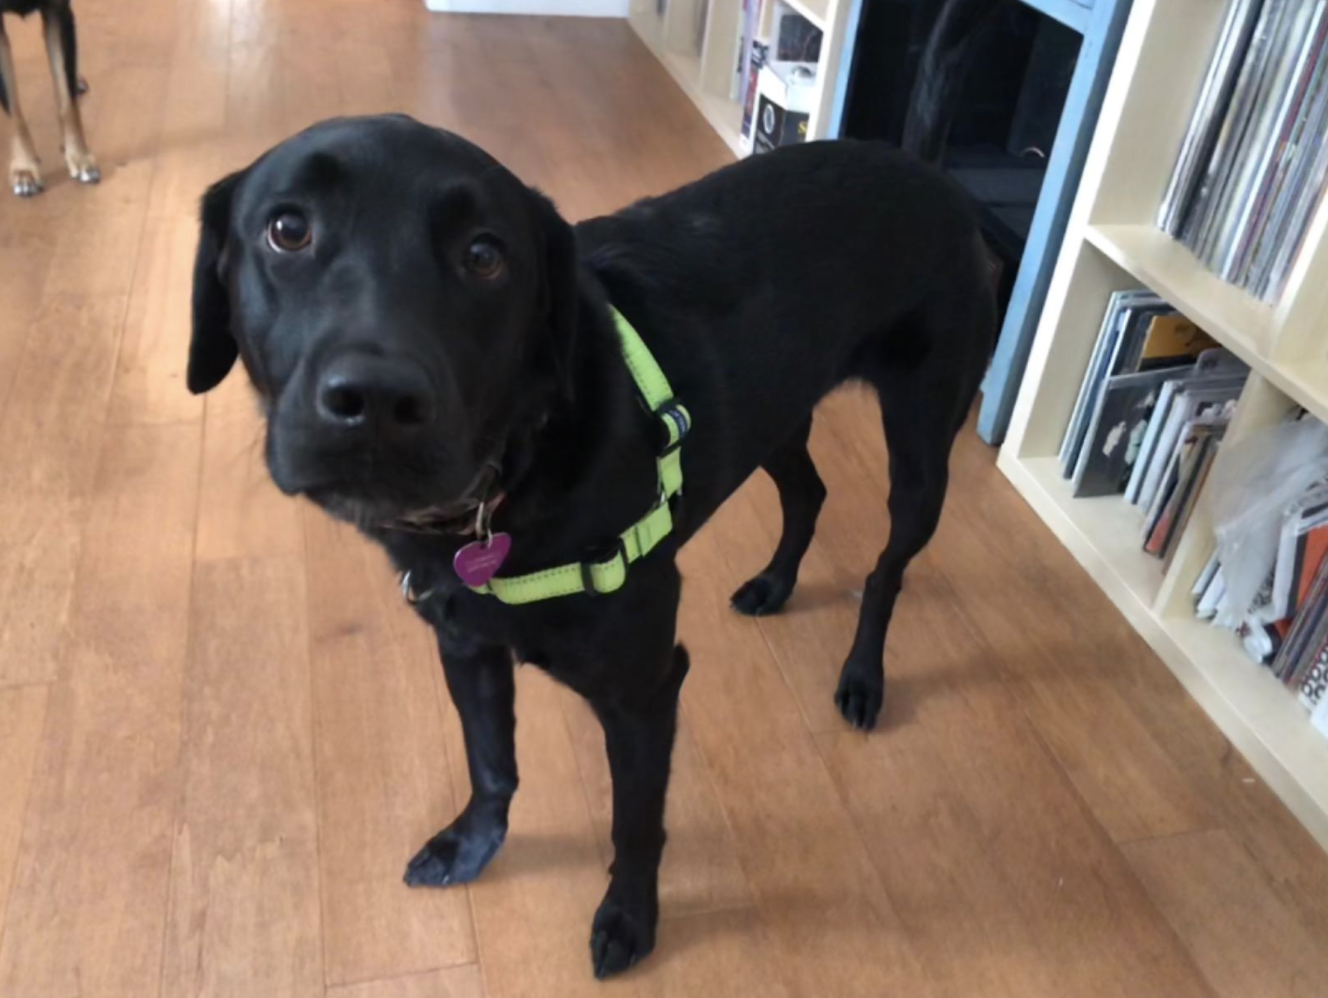 Black lab type dog wearing a neon green Easy Walk harness